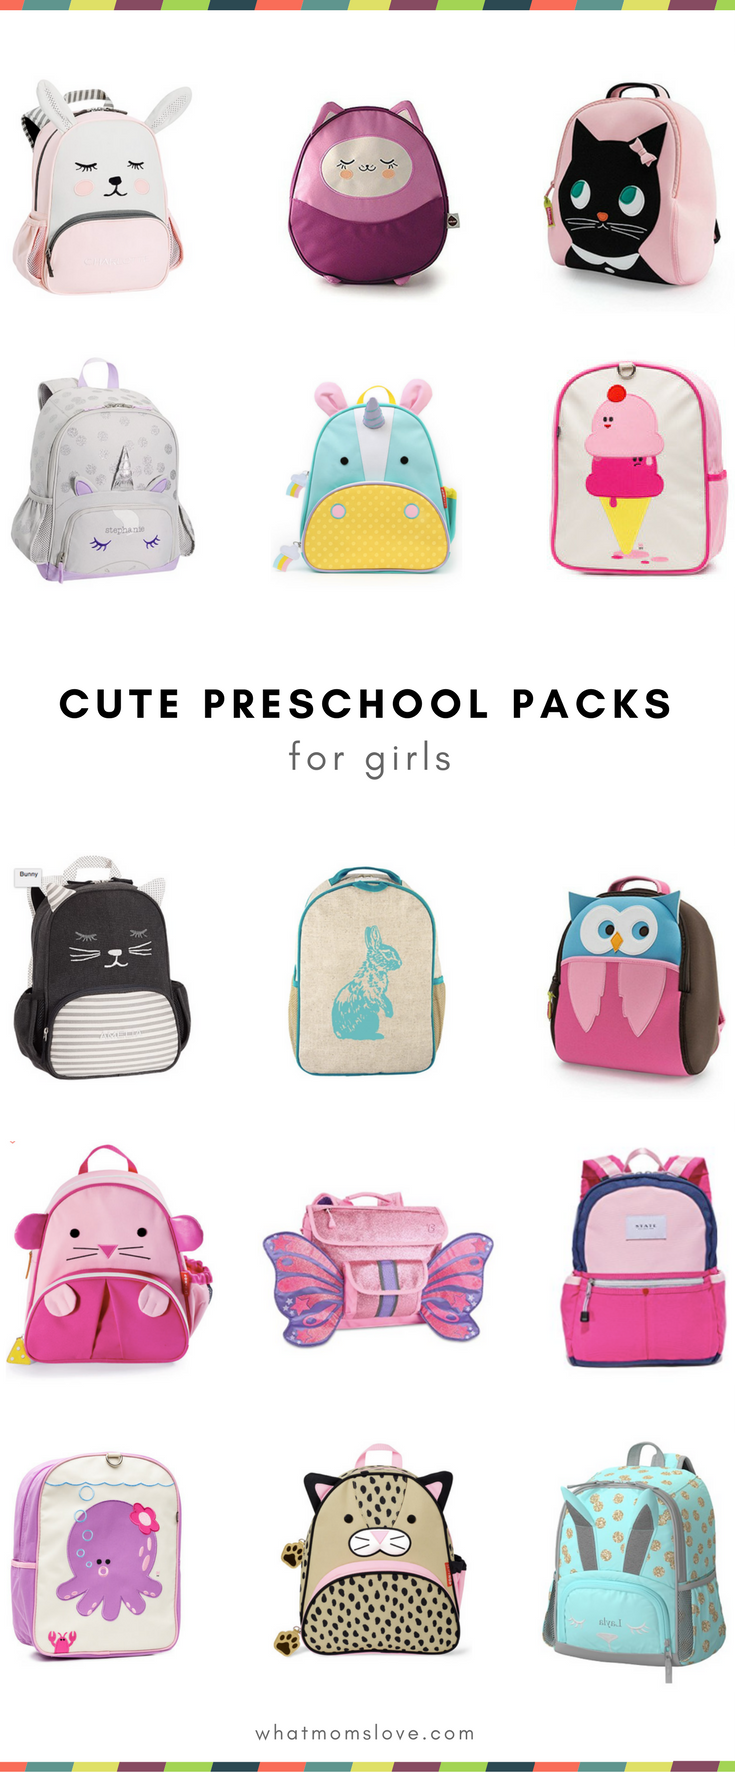 Best backpacks for preschoolers and toddlers   Preschool gear for little  kids - all the products you need getting ready for the first day of school  or ... d55e39e554